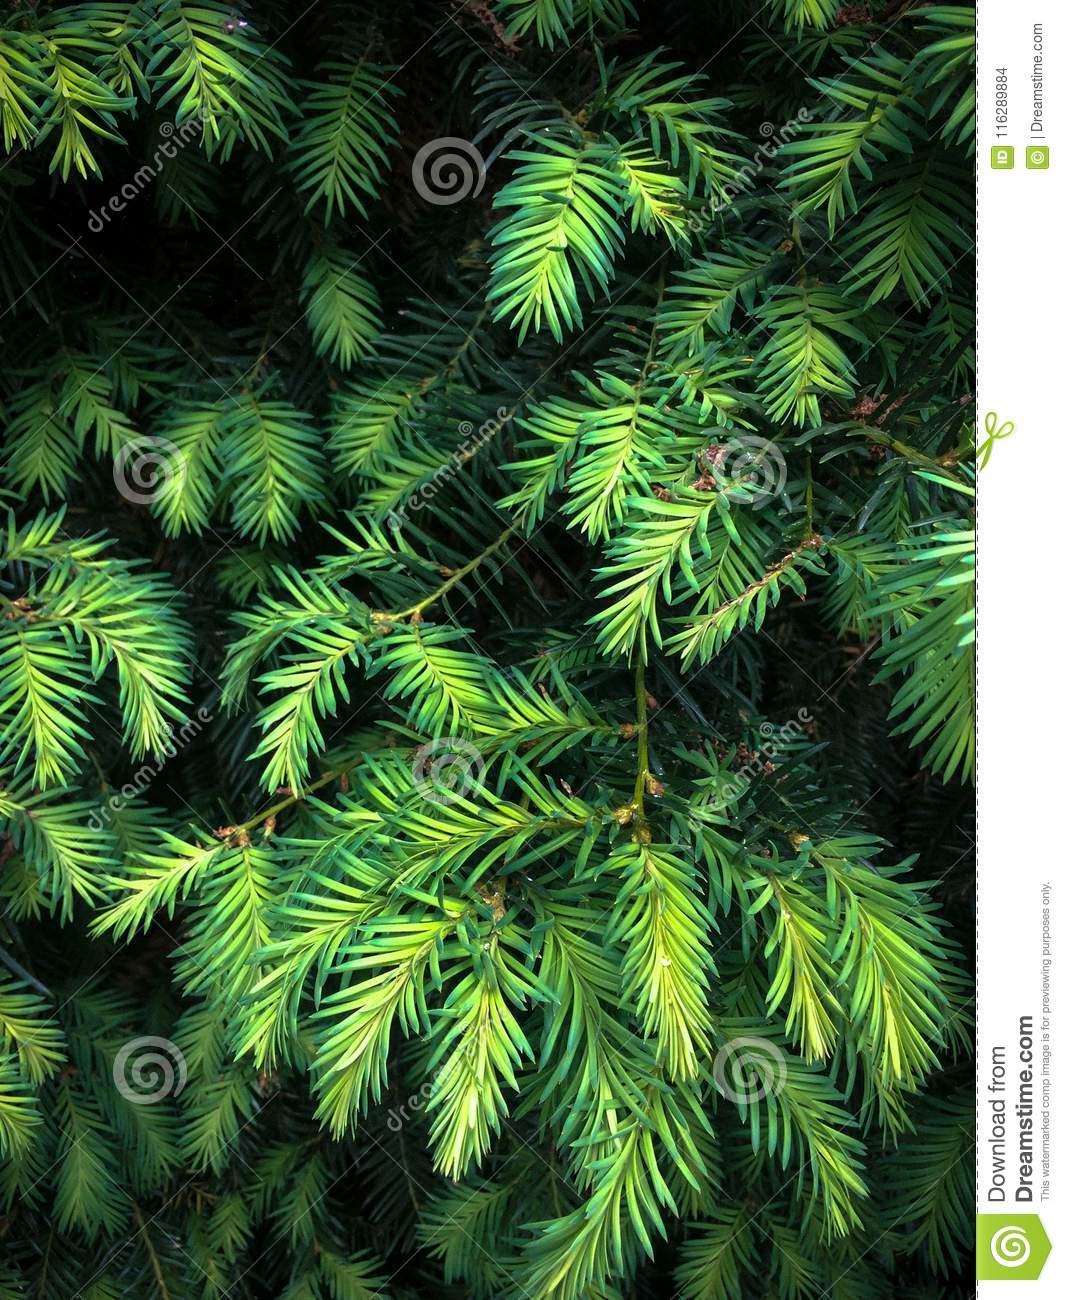 Furry spruce branches